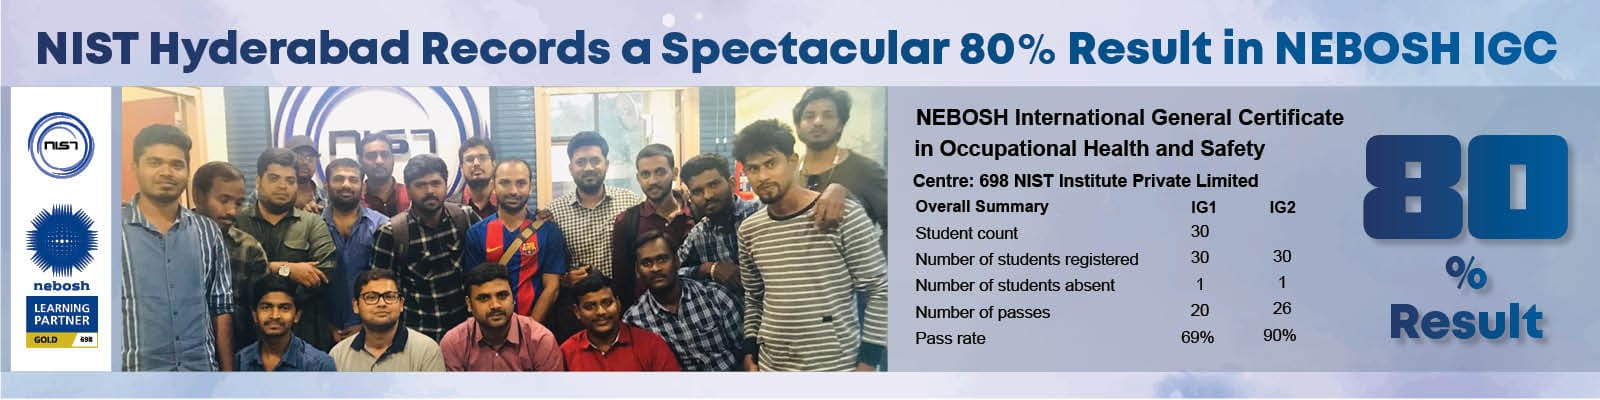 hyderabad-remarkable-result-of-80-achieved-in-nebosh-igc